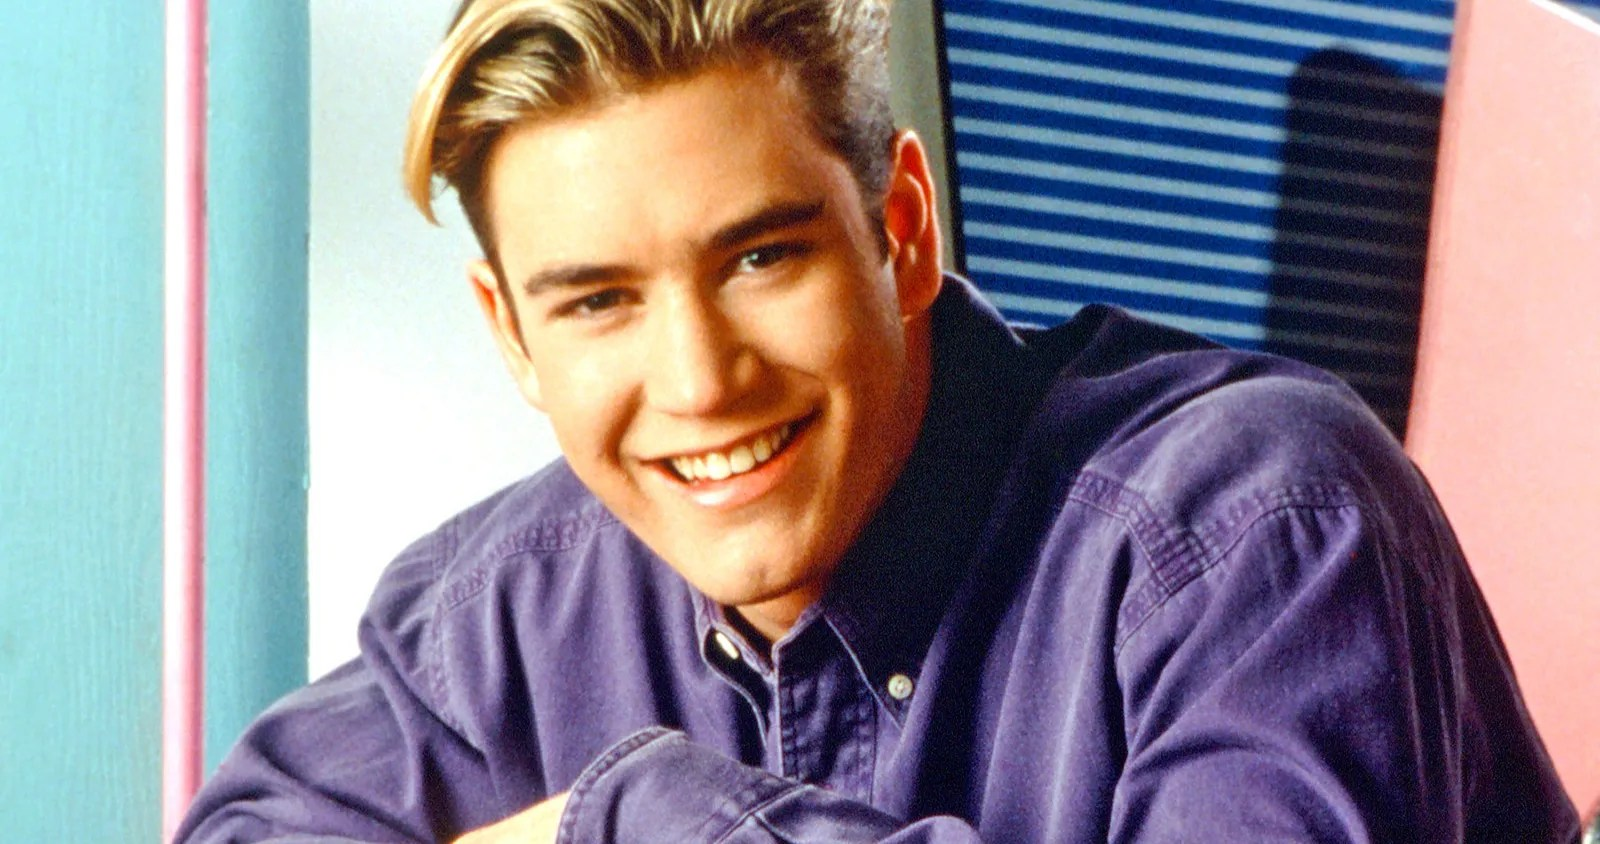 Zack Morris Is Still Trash in 'Saved by the Bell' Reboot Promises Mark-Paul Gosselaar